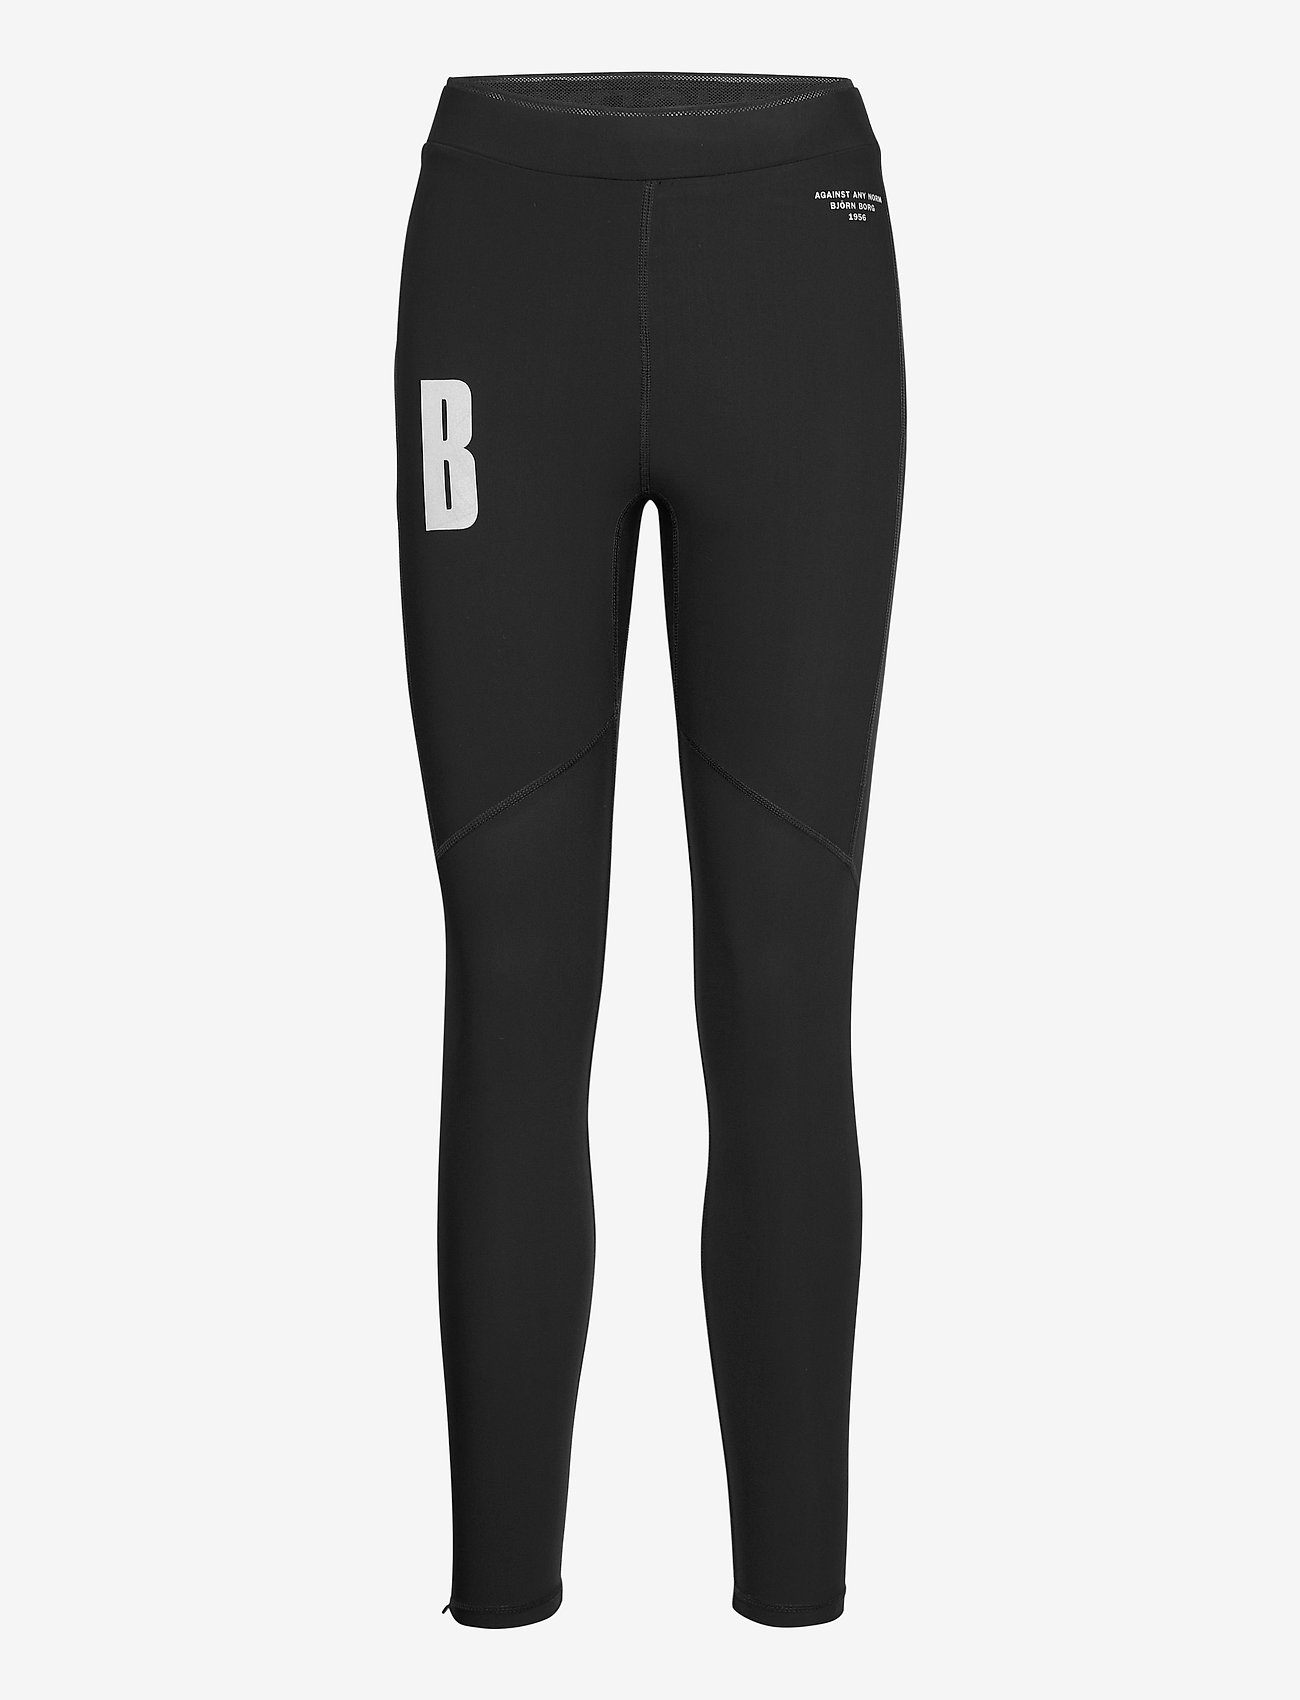 Björn Borg - TIGHTS W NIGHT NIGHT - running & training tights - black beauty - 0